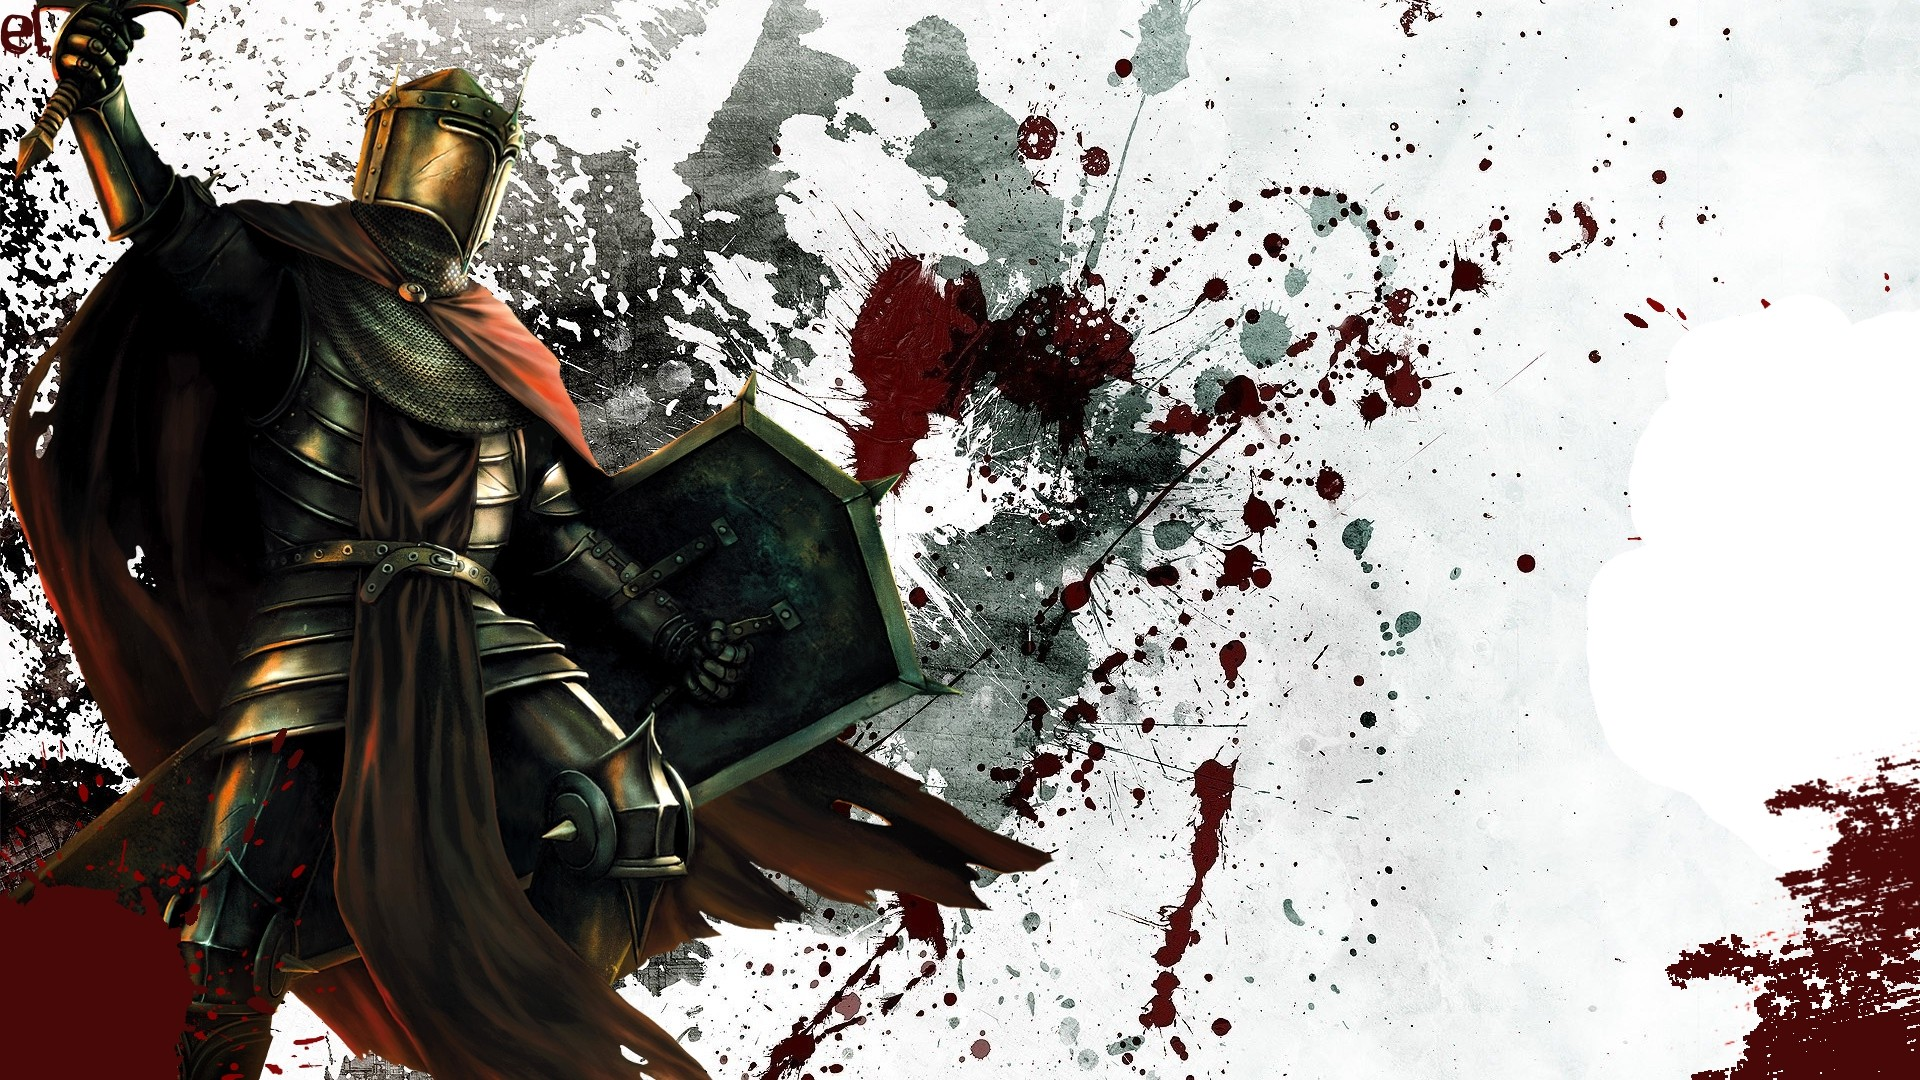 Knights Medieval Wallpaper 1920x1080 Knights Medieval Games 1920x1080